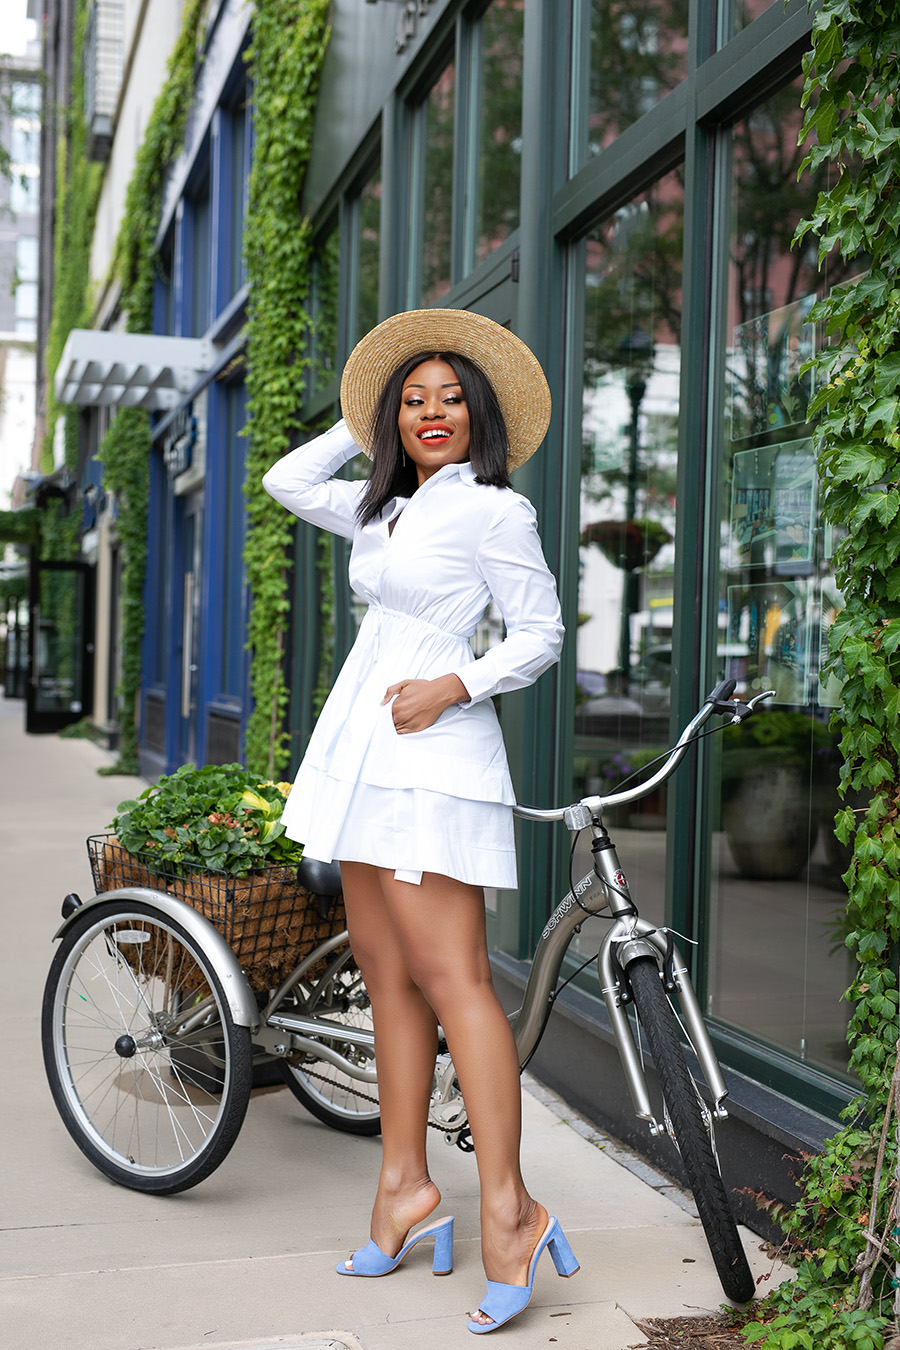 a girl in white dress and hat next to her bicycle